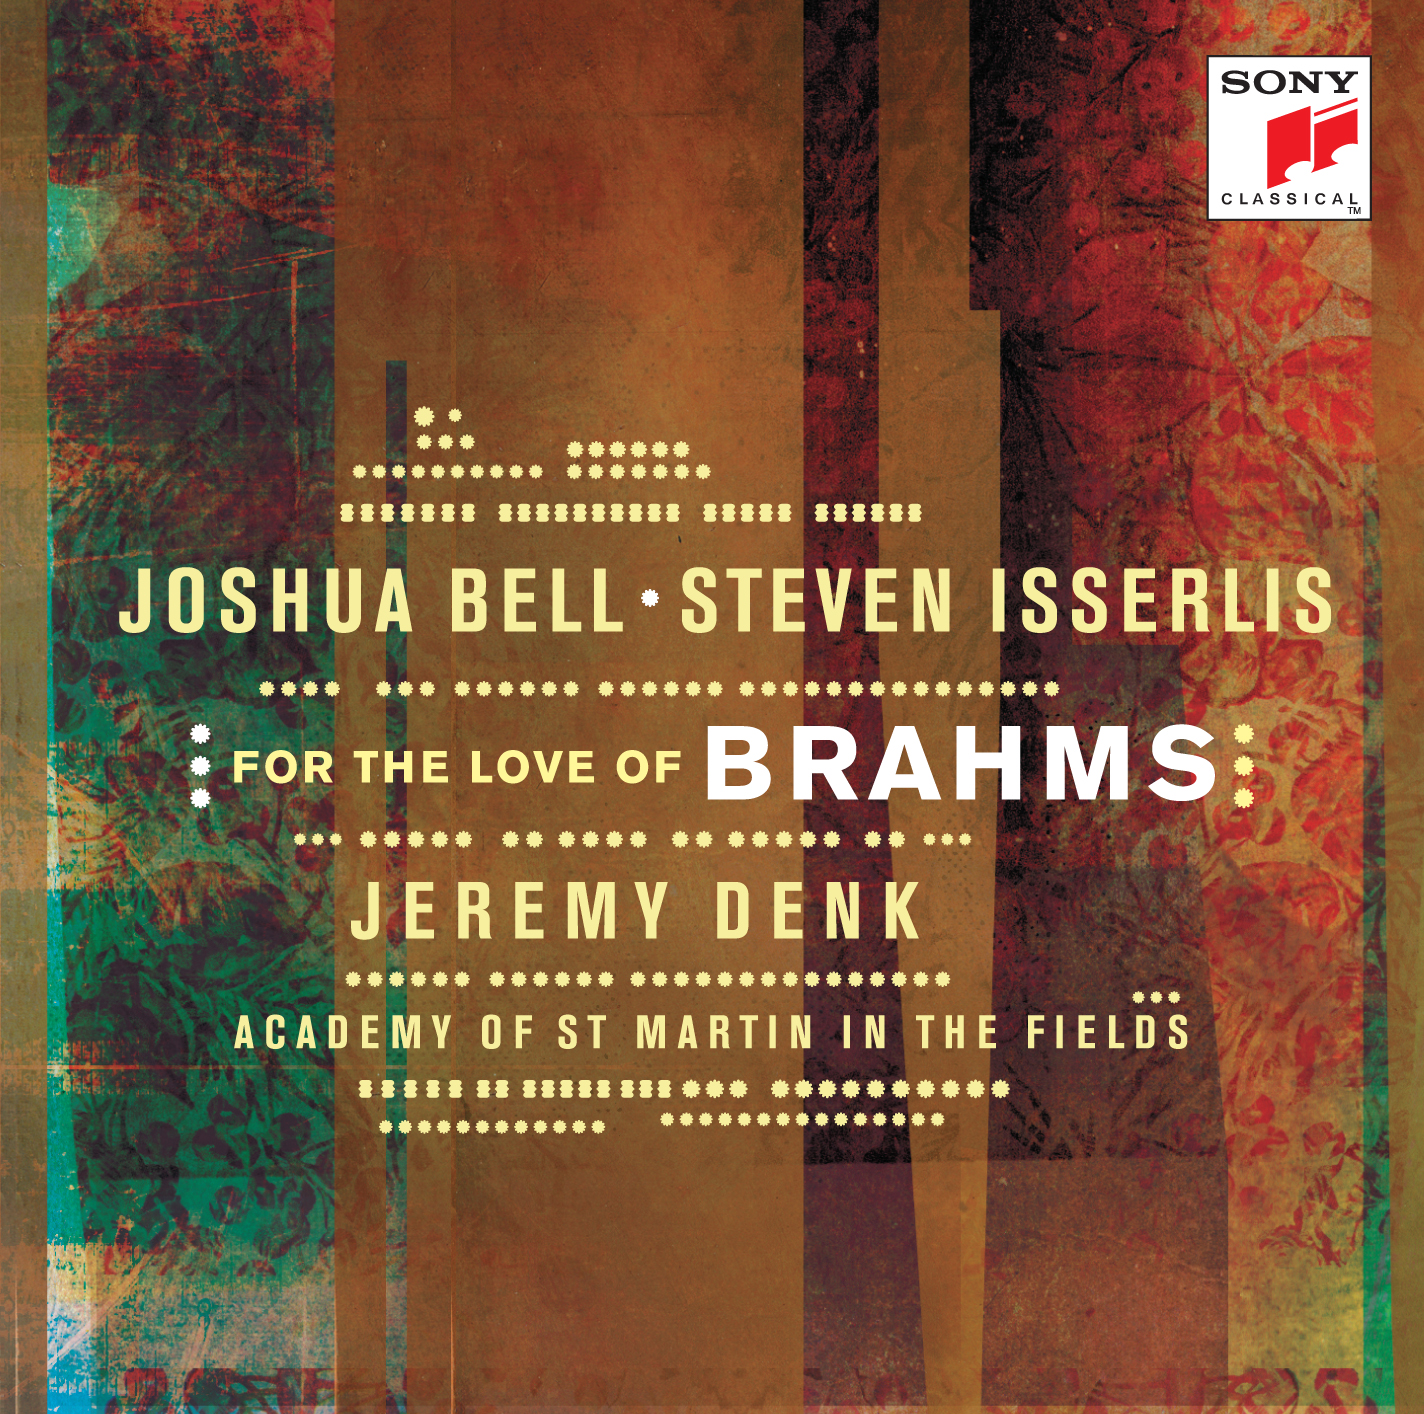 MUSIC ABOUT LOVE AND FRIENDSHIP INSPIRES JOSHUA BELL AND STEVEN ISSERLIS ON NEW ALBUM FOR THE LOVE OF BRAHMS | Out Now! Image